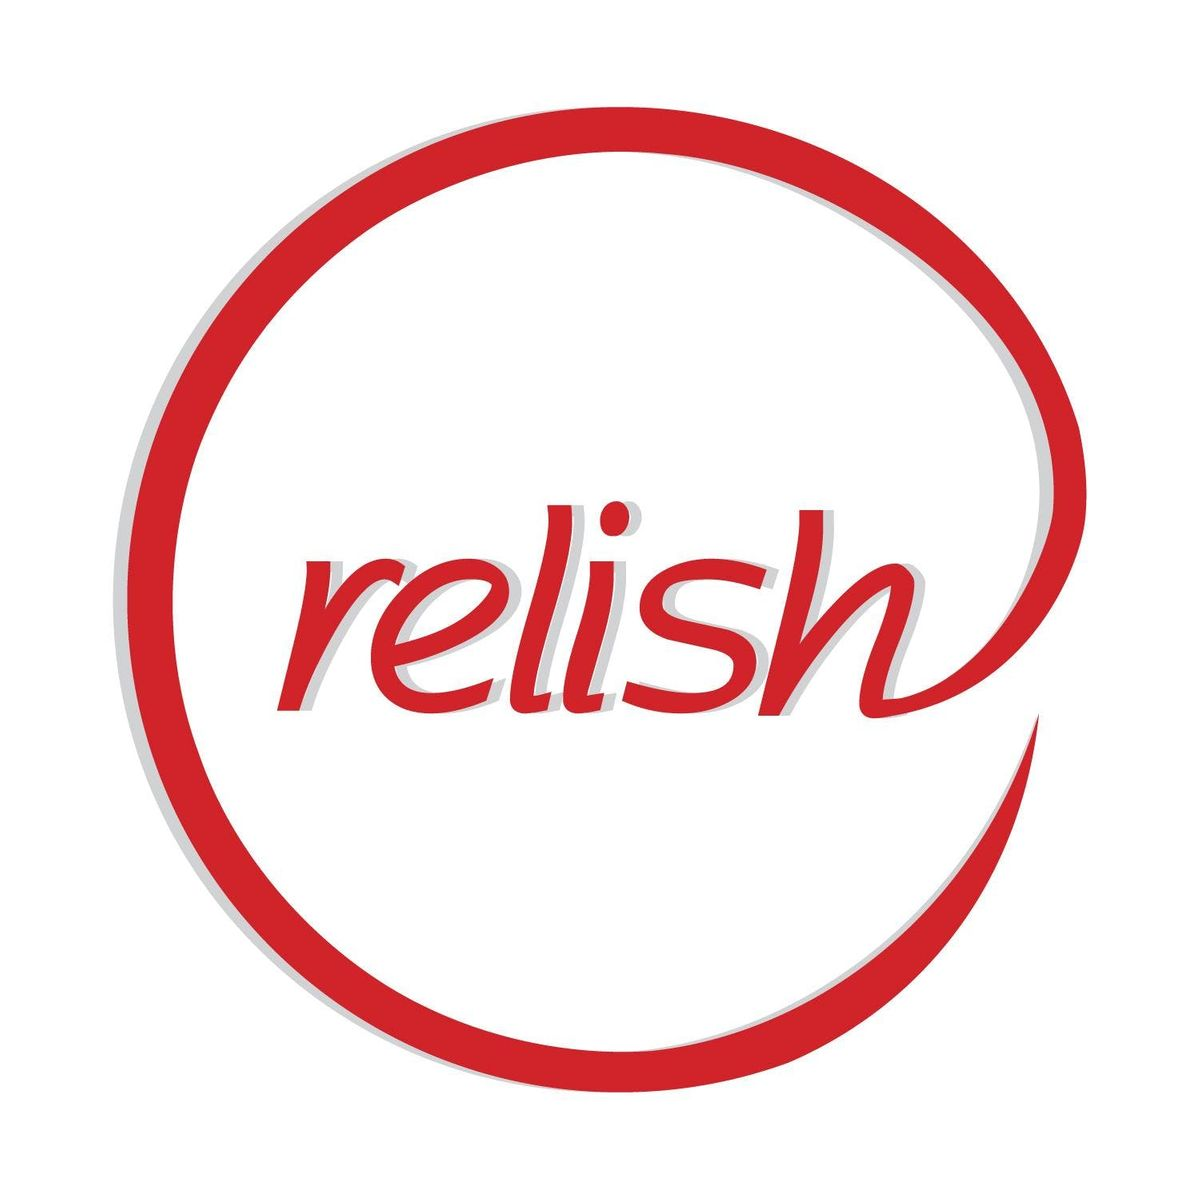 Saturday Singles Event Night  Speed Dating in Cincinnati  Hosted by Relish Speed Dating